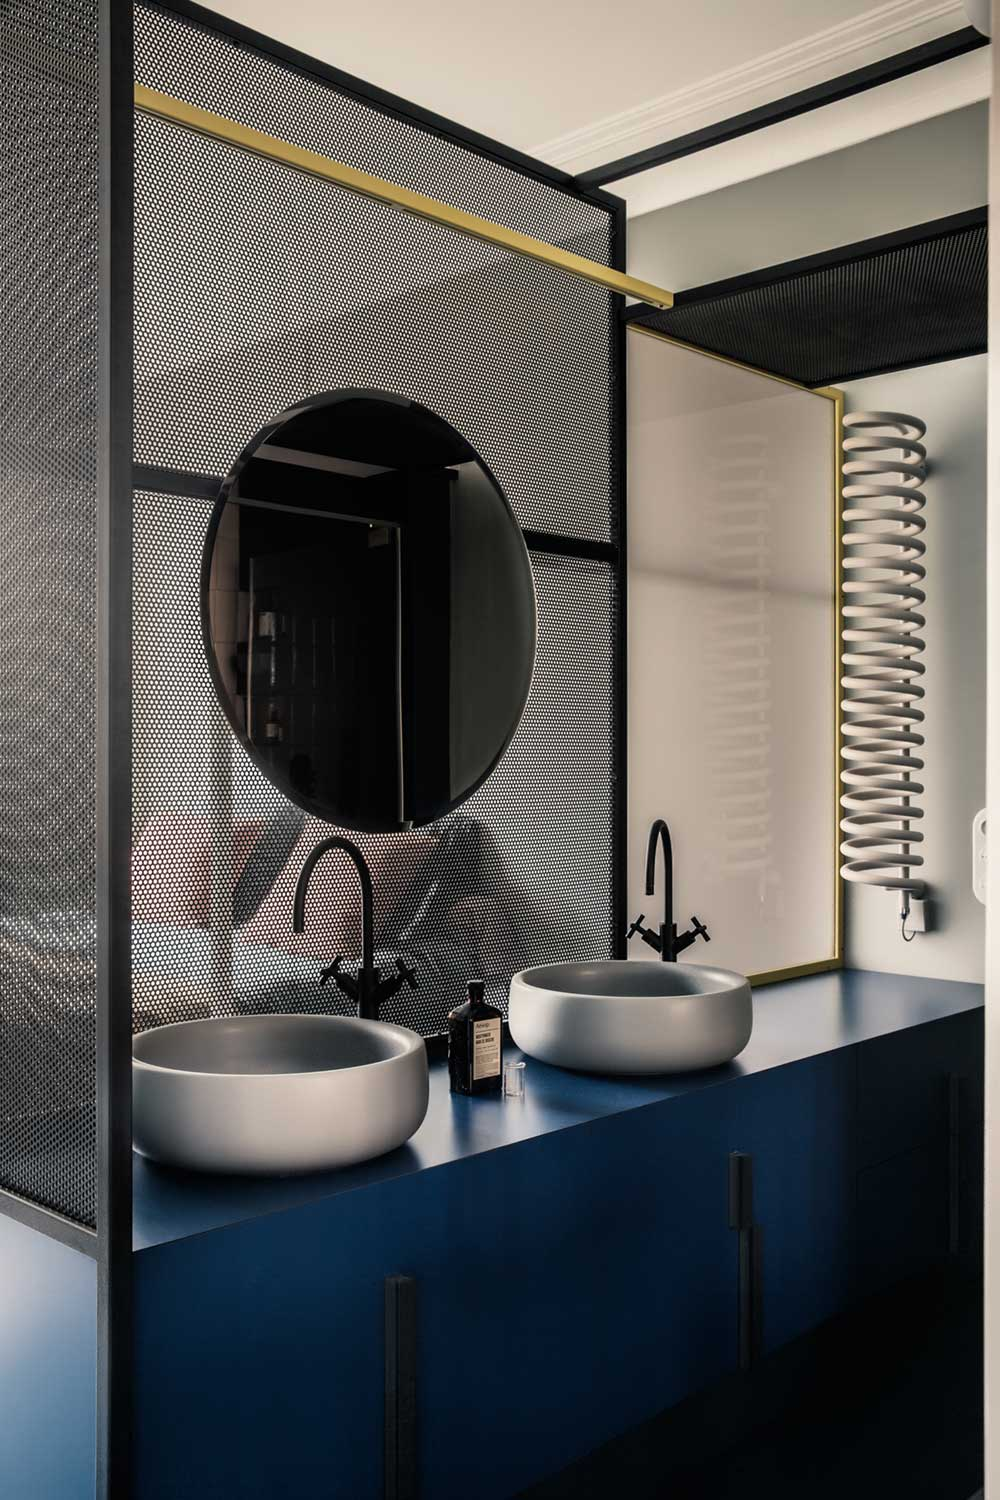 Blue Bathroom Cabinet and Silver Sink